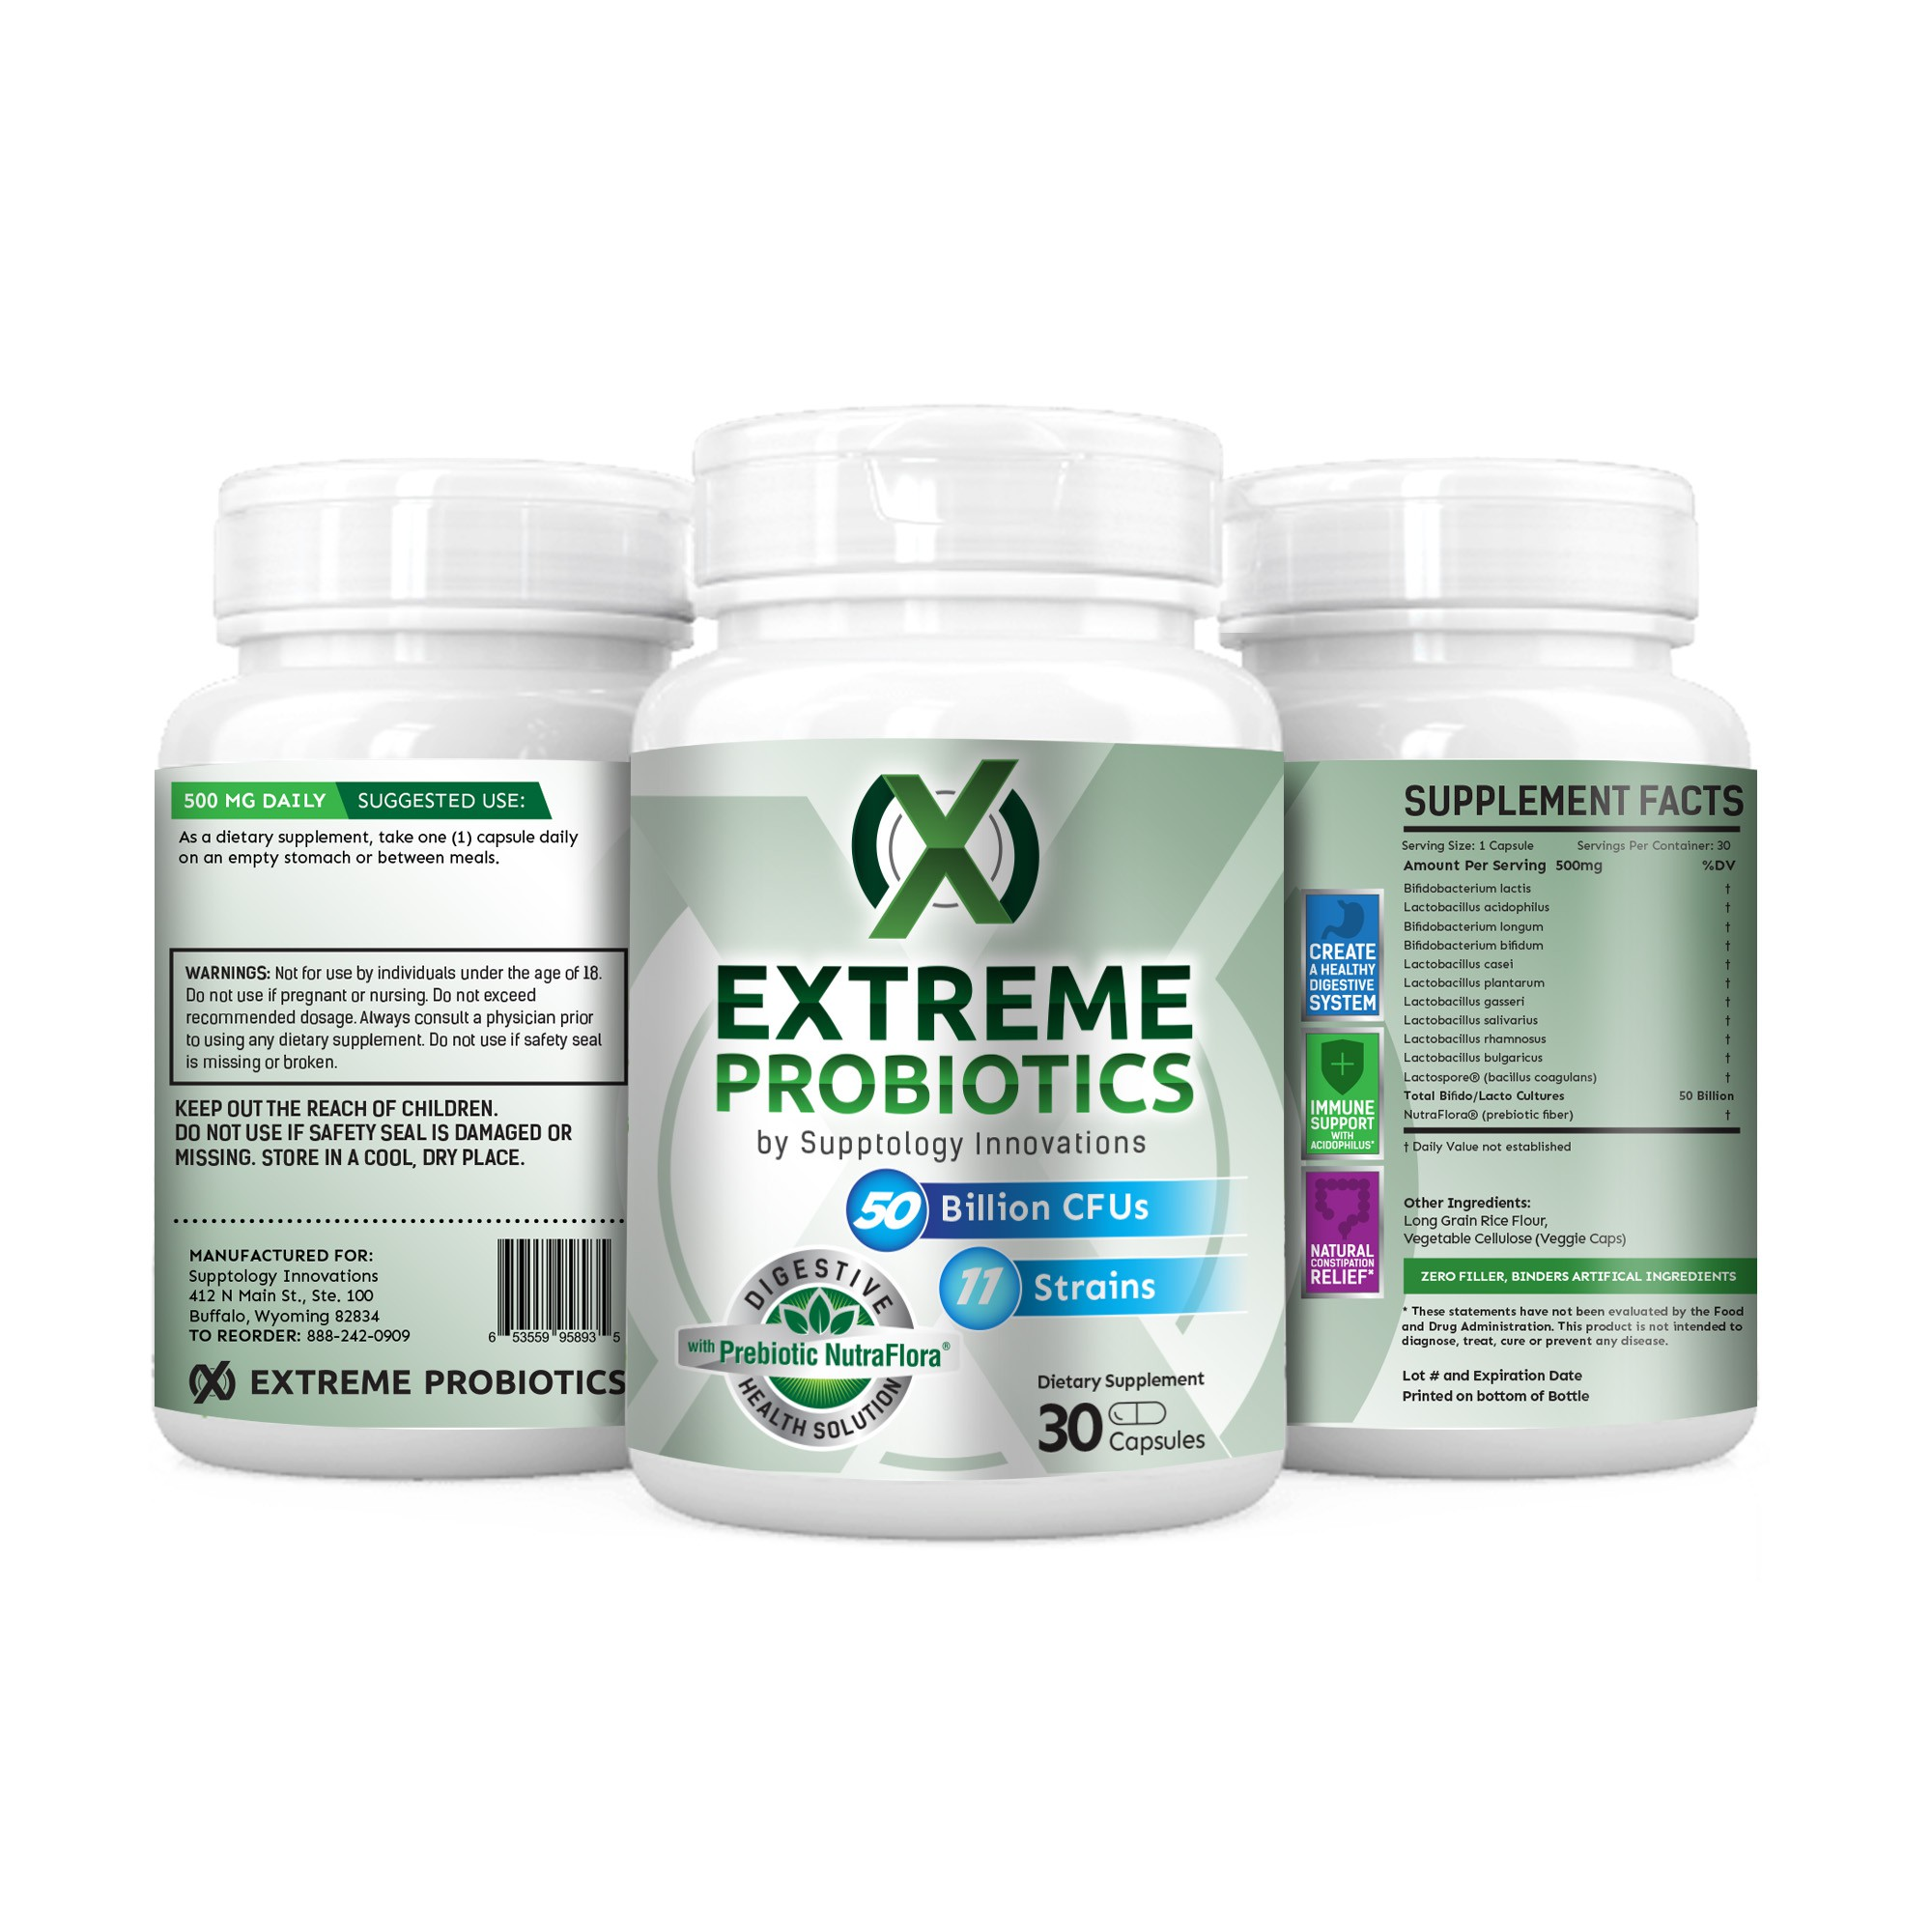 Create powerful label for Extreme Probiotic product.